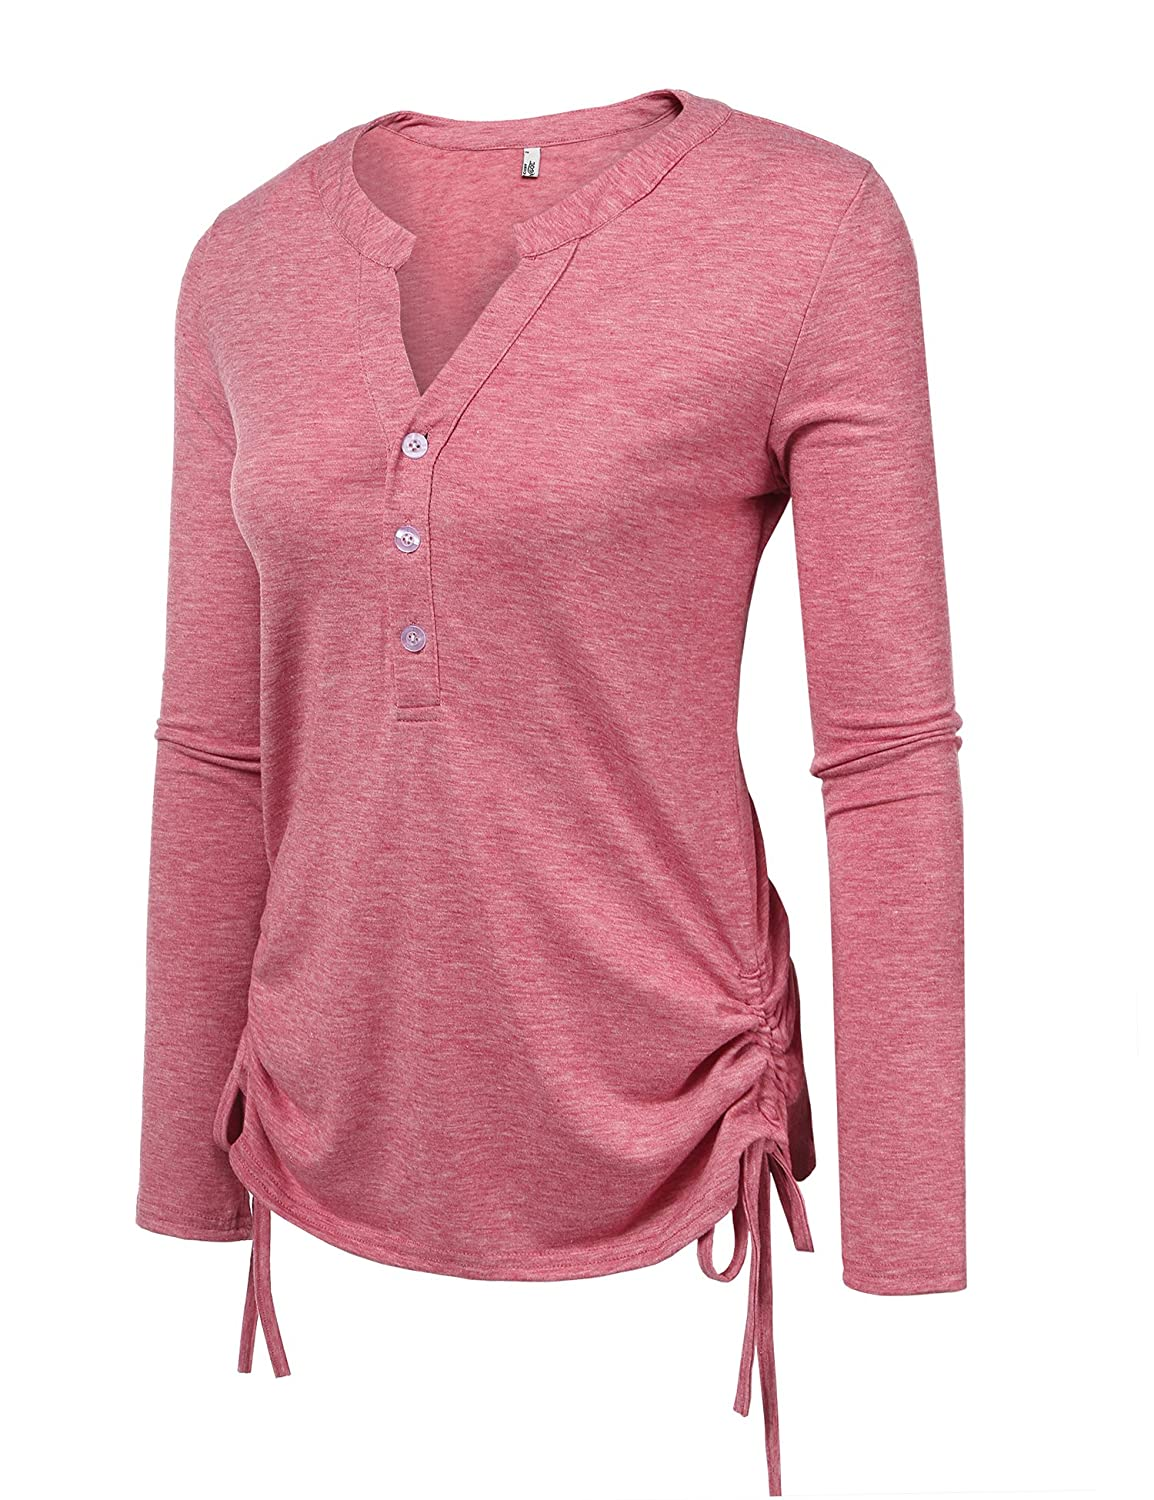 Meaneor Womens Long Sleeve Thermal Cotton Henley Casual T-Shirt MAH021021